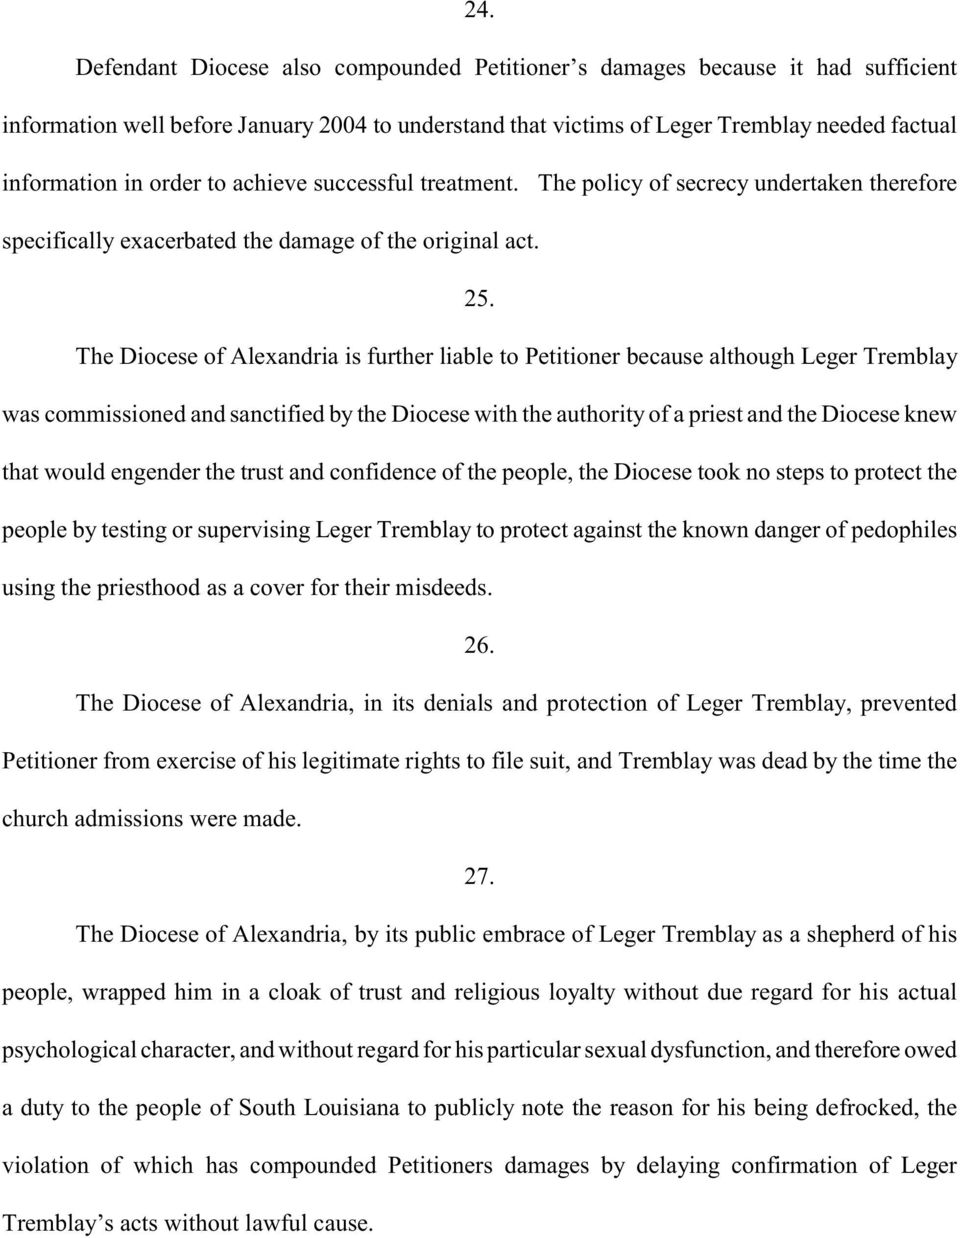 The Diocese of Alexandria is further liable to Petitioner because although Leger Tremblay was commissioned and sanctified by the Diocese with the authority of a priest and the Diocese knew that would